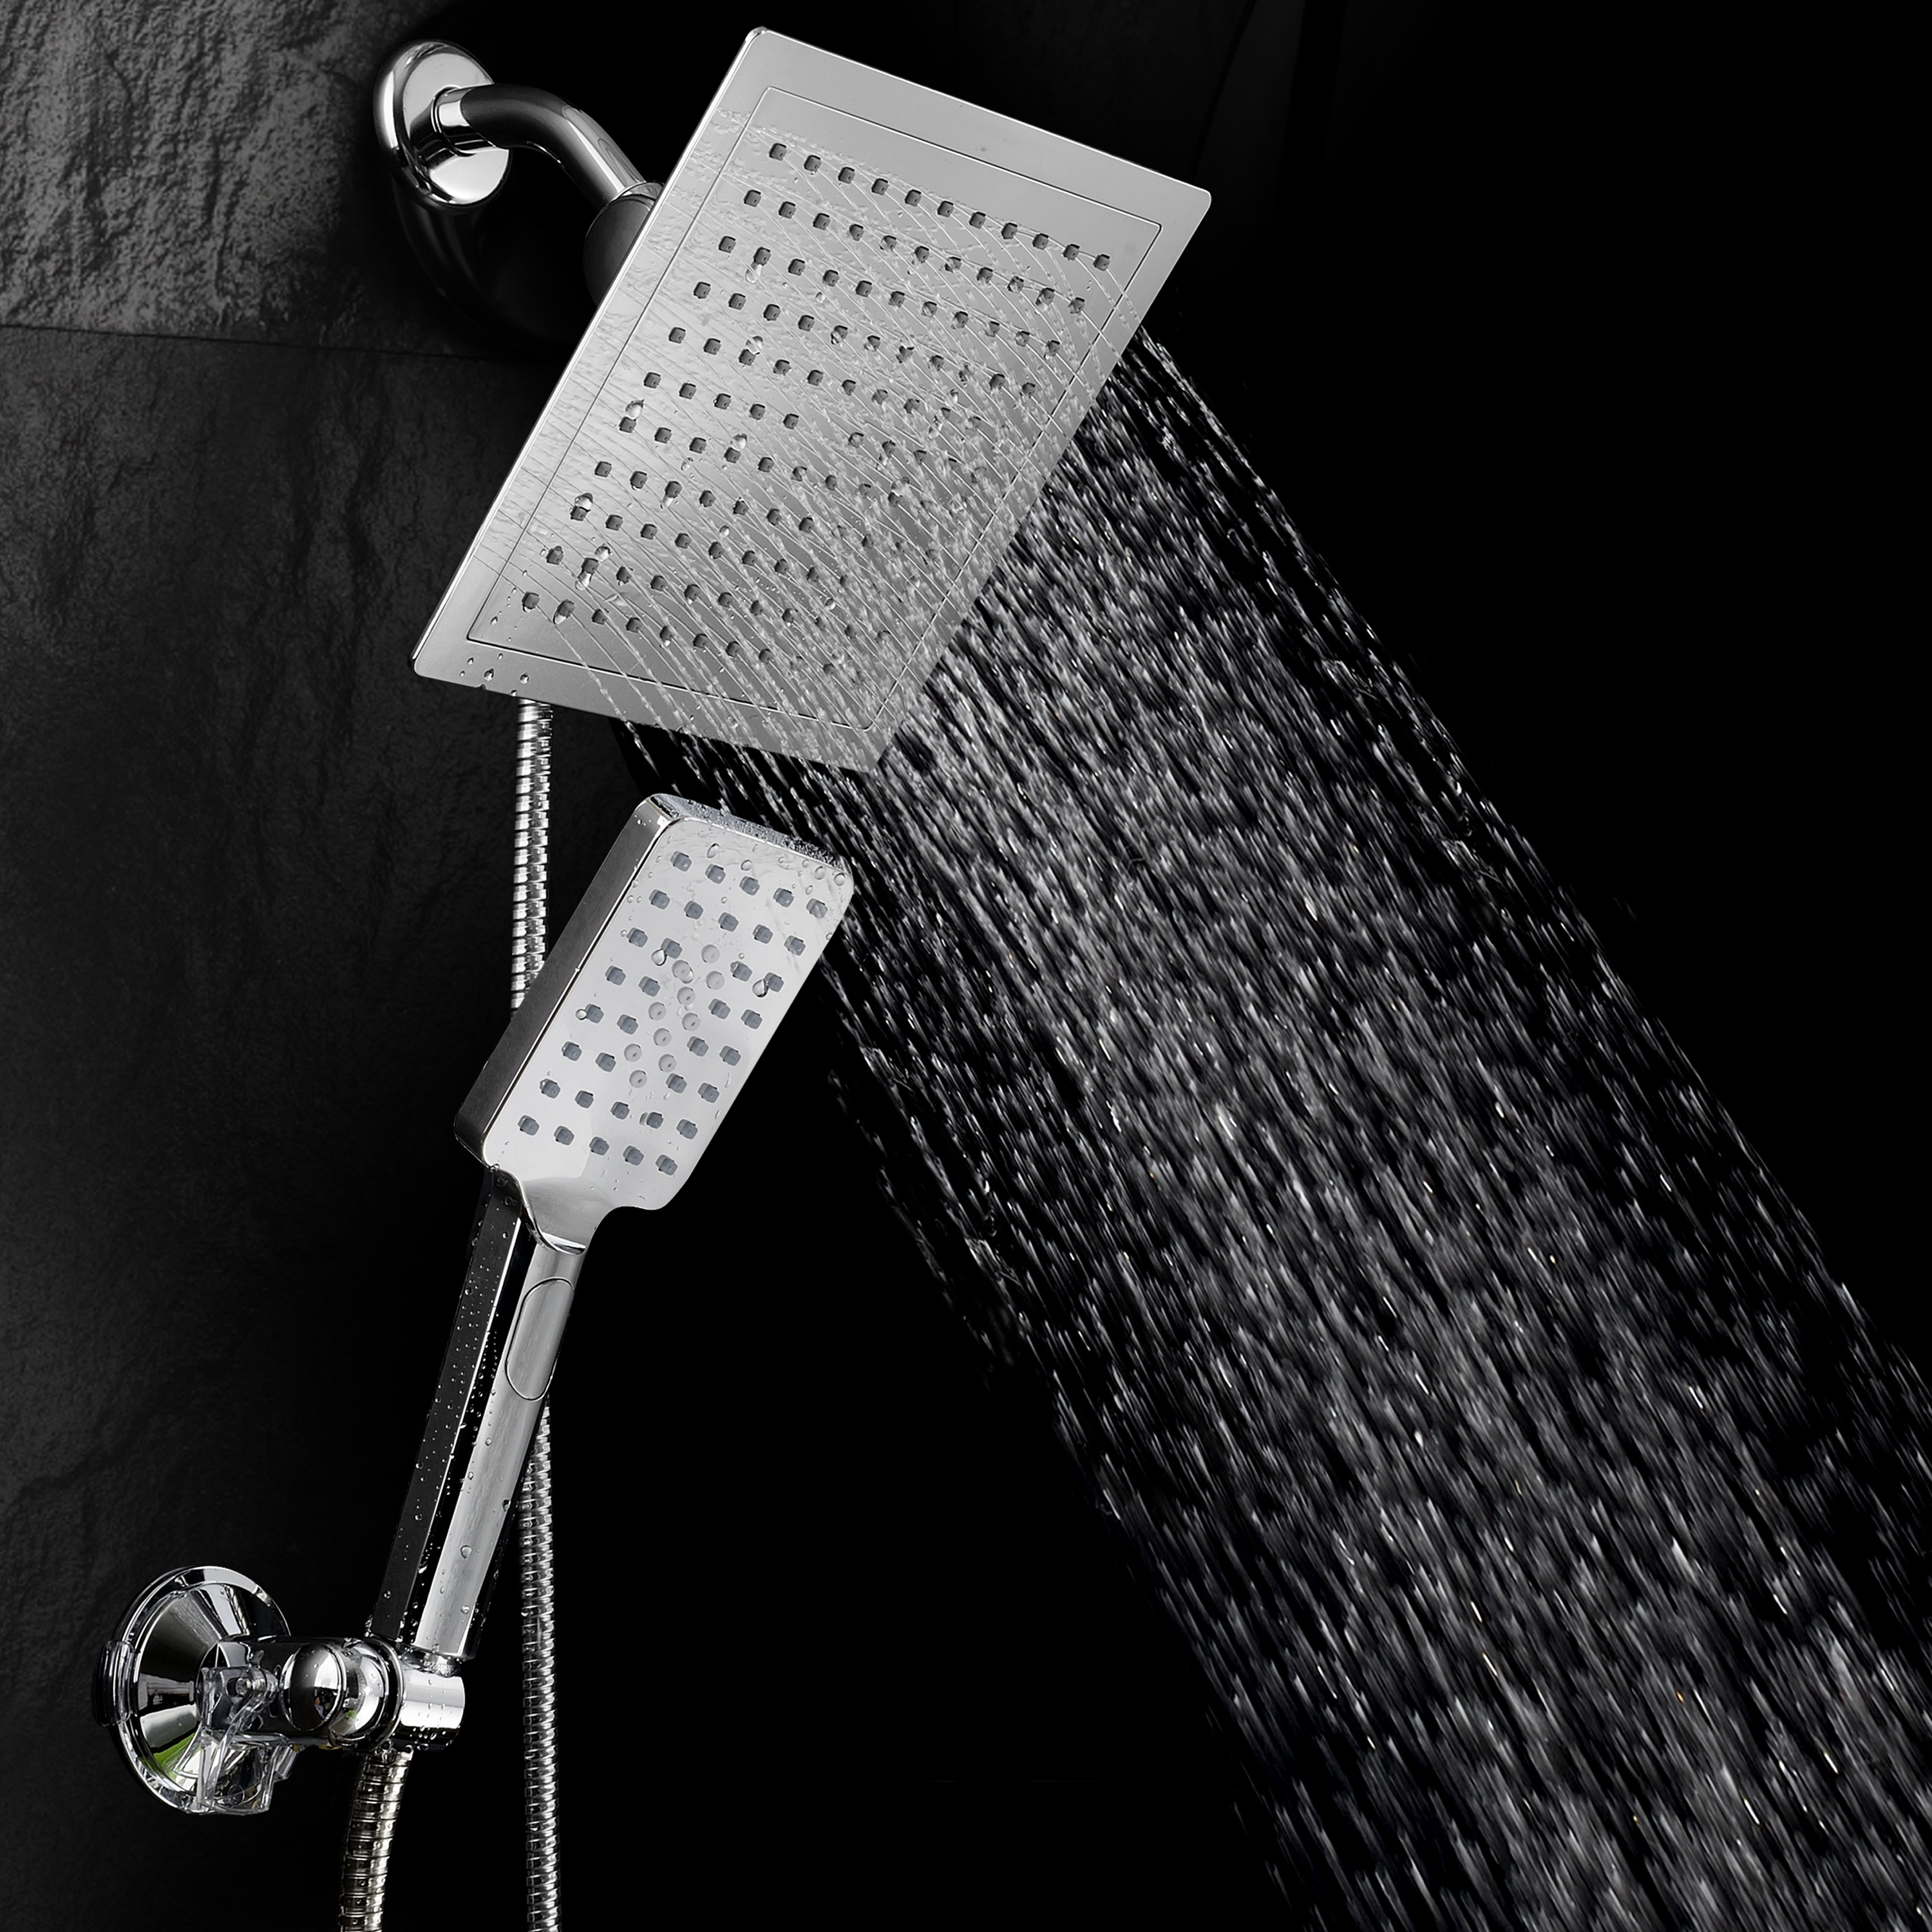 DreamSpa® Ultra-Luxury 9-Inch Square Rainfall Combo with Revolutionary Push-Control Hand Shower and Low-Reach Wall Bracket